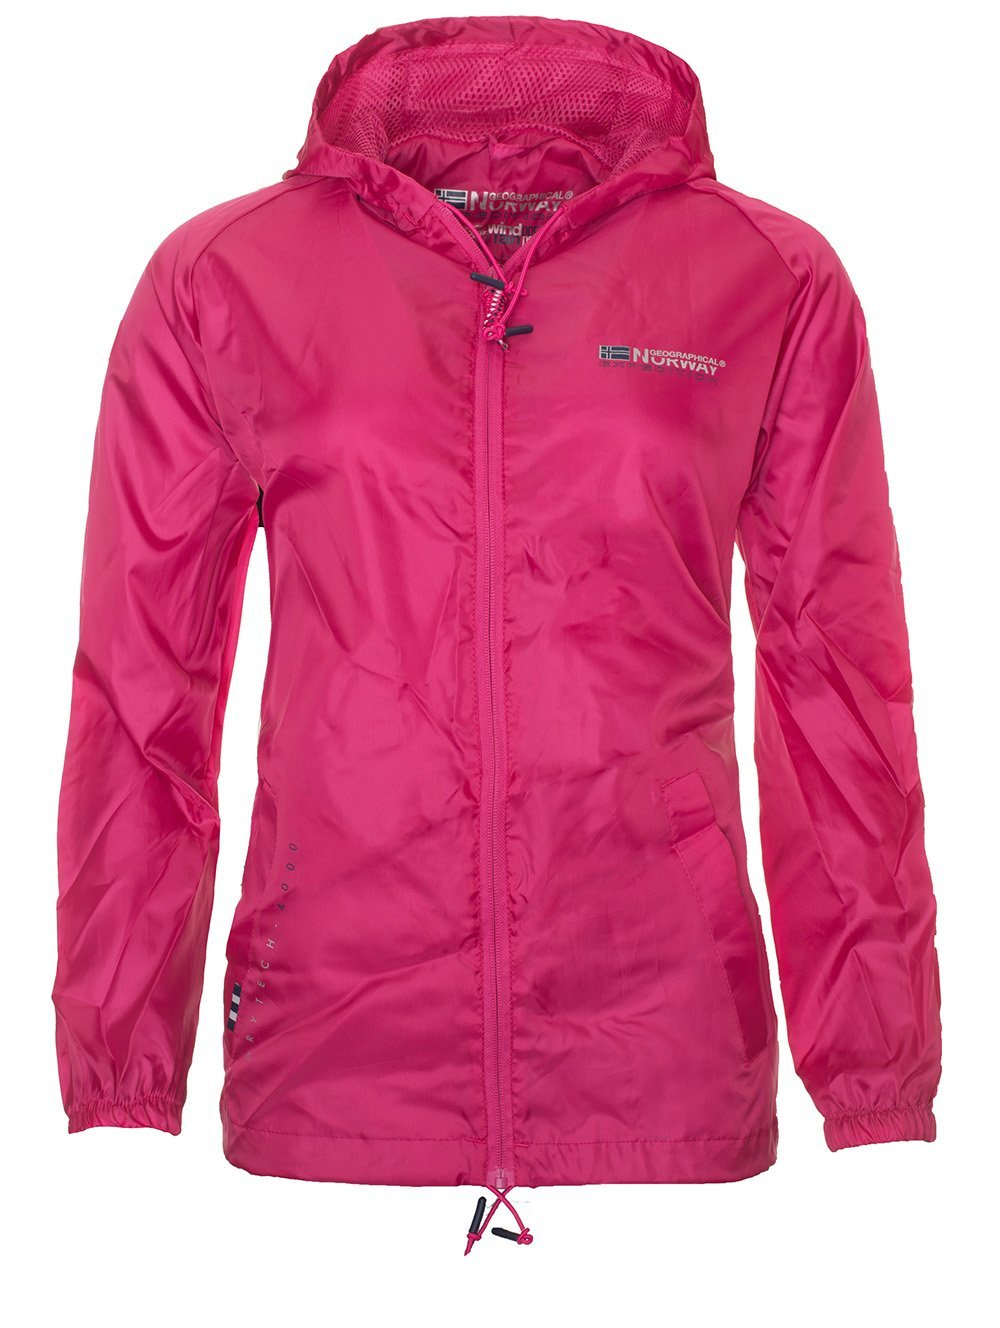 Geographical norway damen regenjacke outdoor ubergangs windbreaker regenmantel